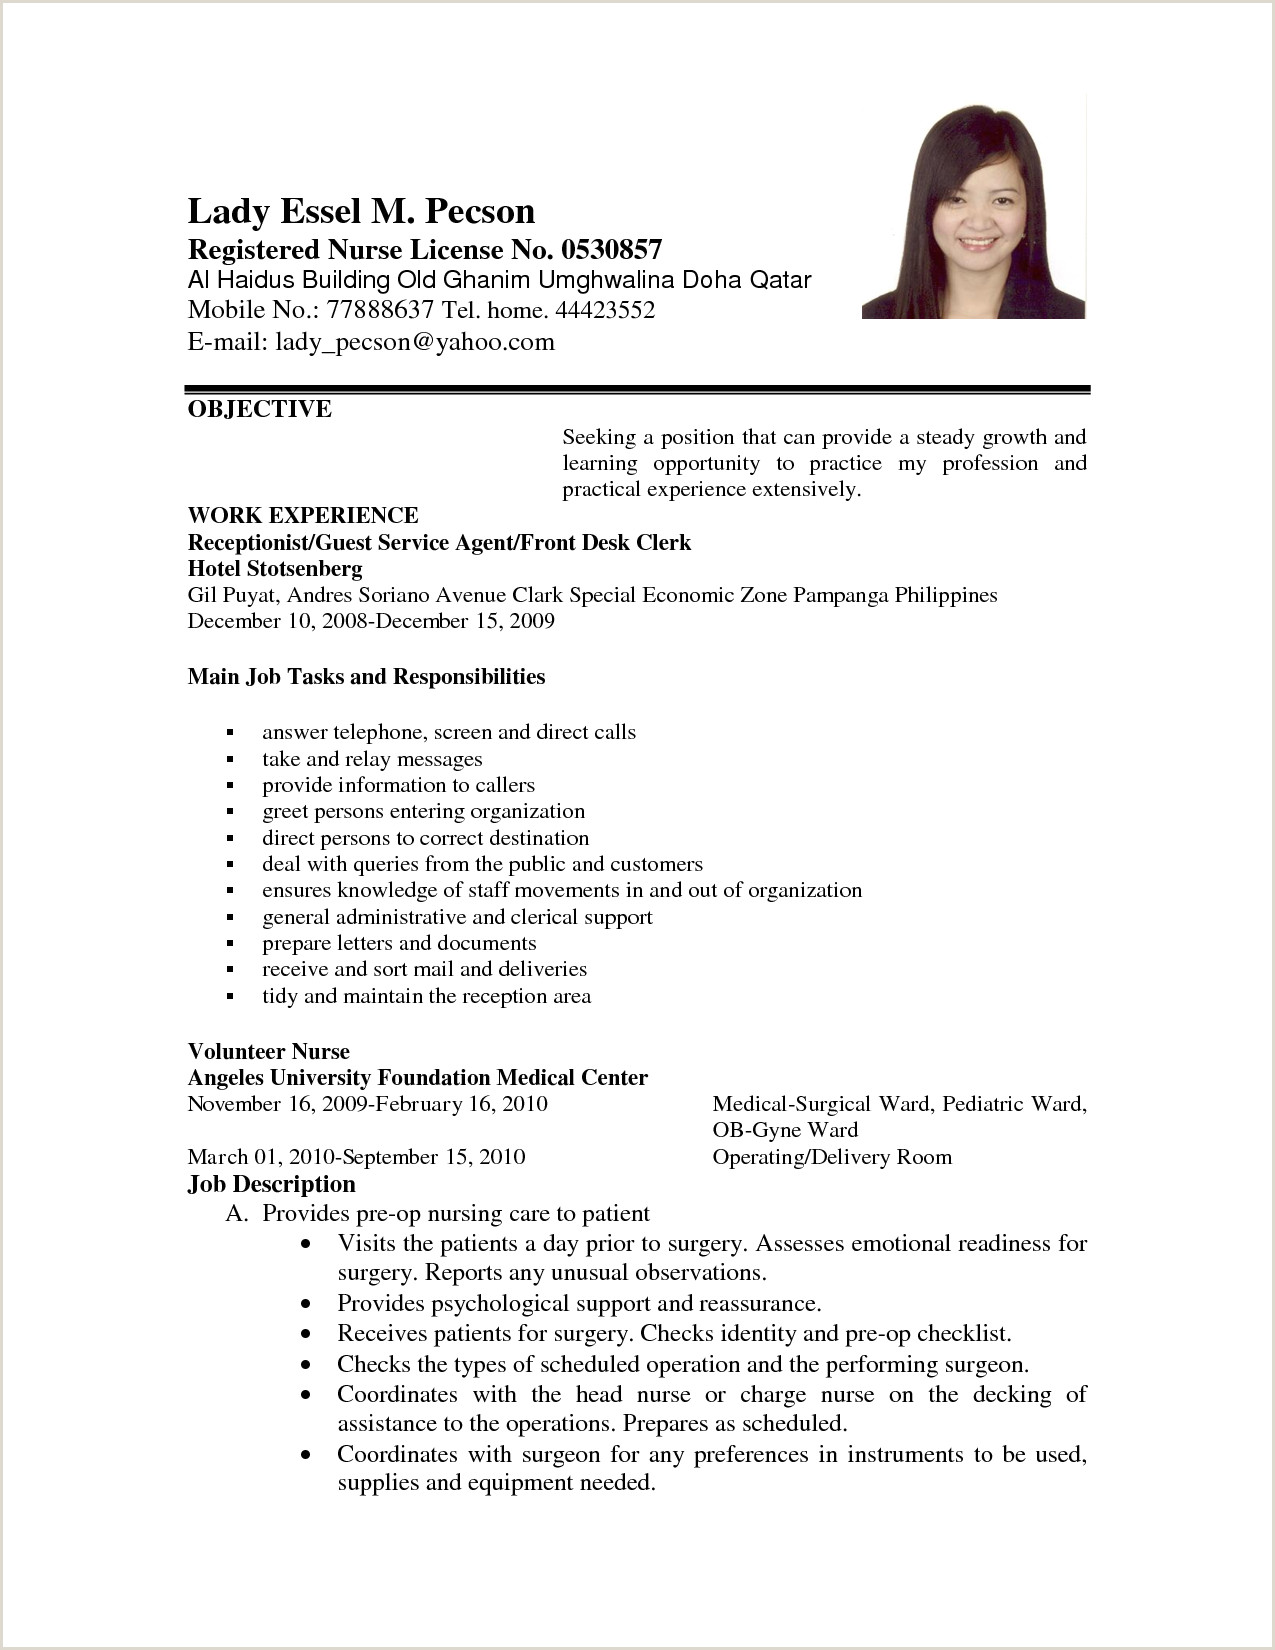 Standard Cv format for Nurses Application Letter format for Volunteer Nurse order Custom